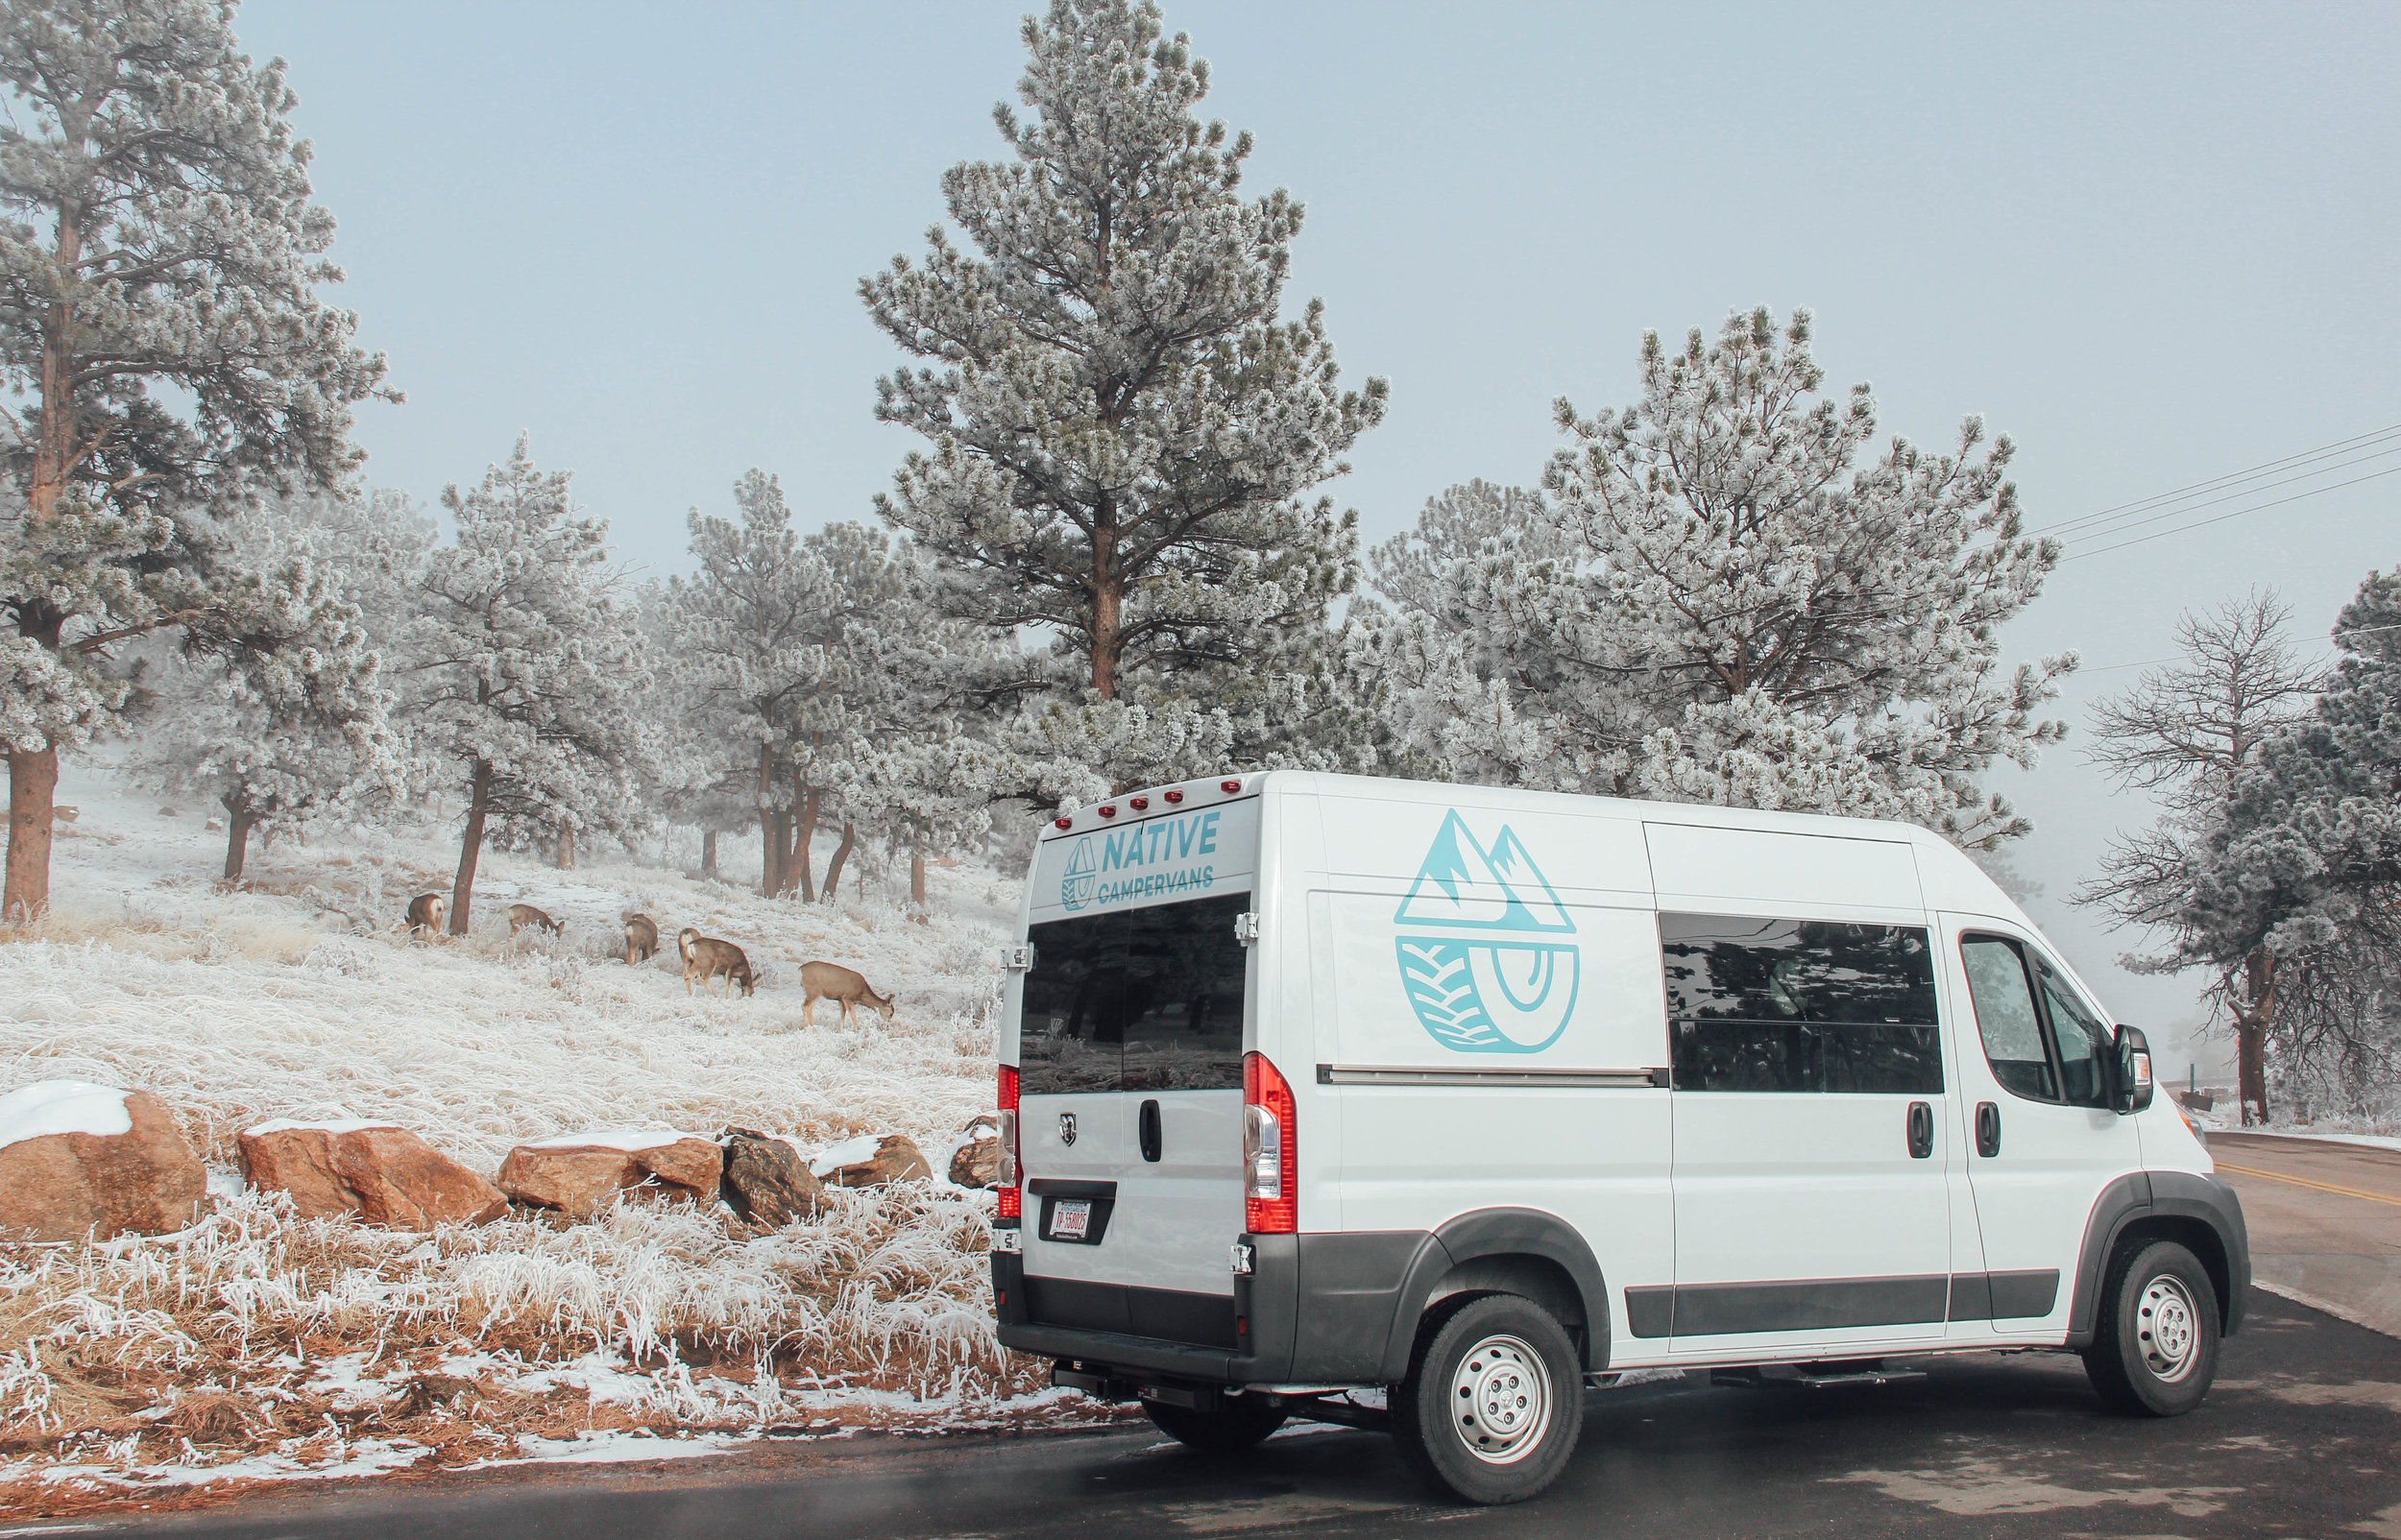 With a small footprint, the Summit is easily navigated through city streets or hidden trail heads.